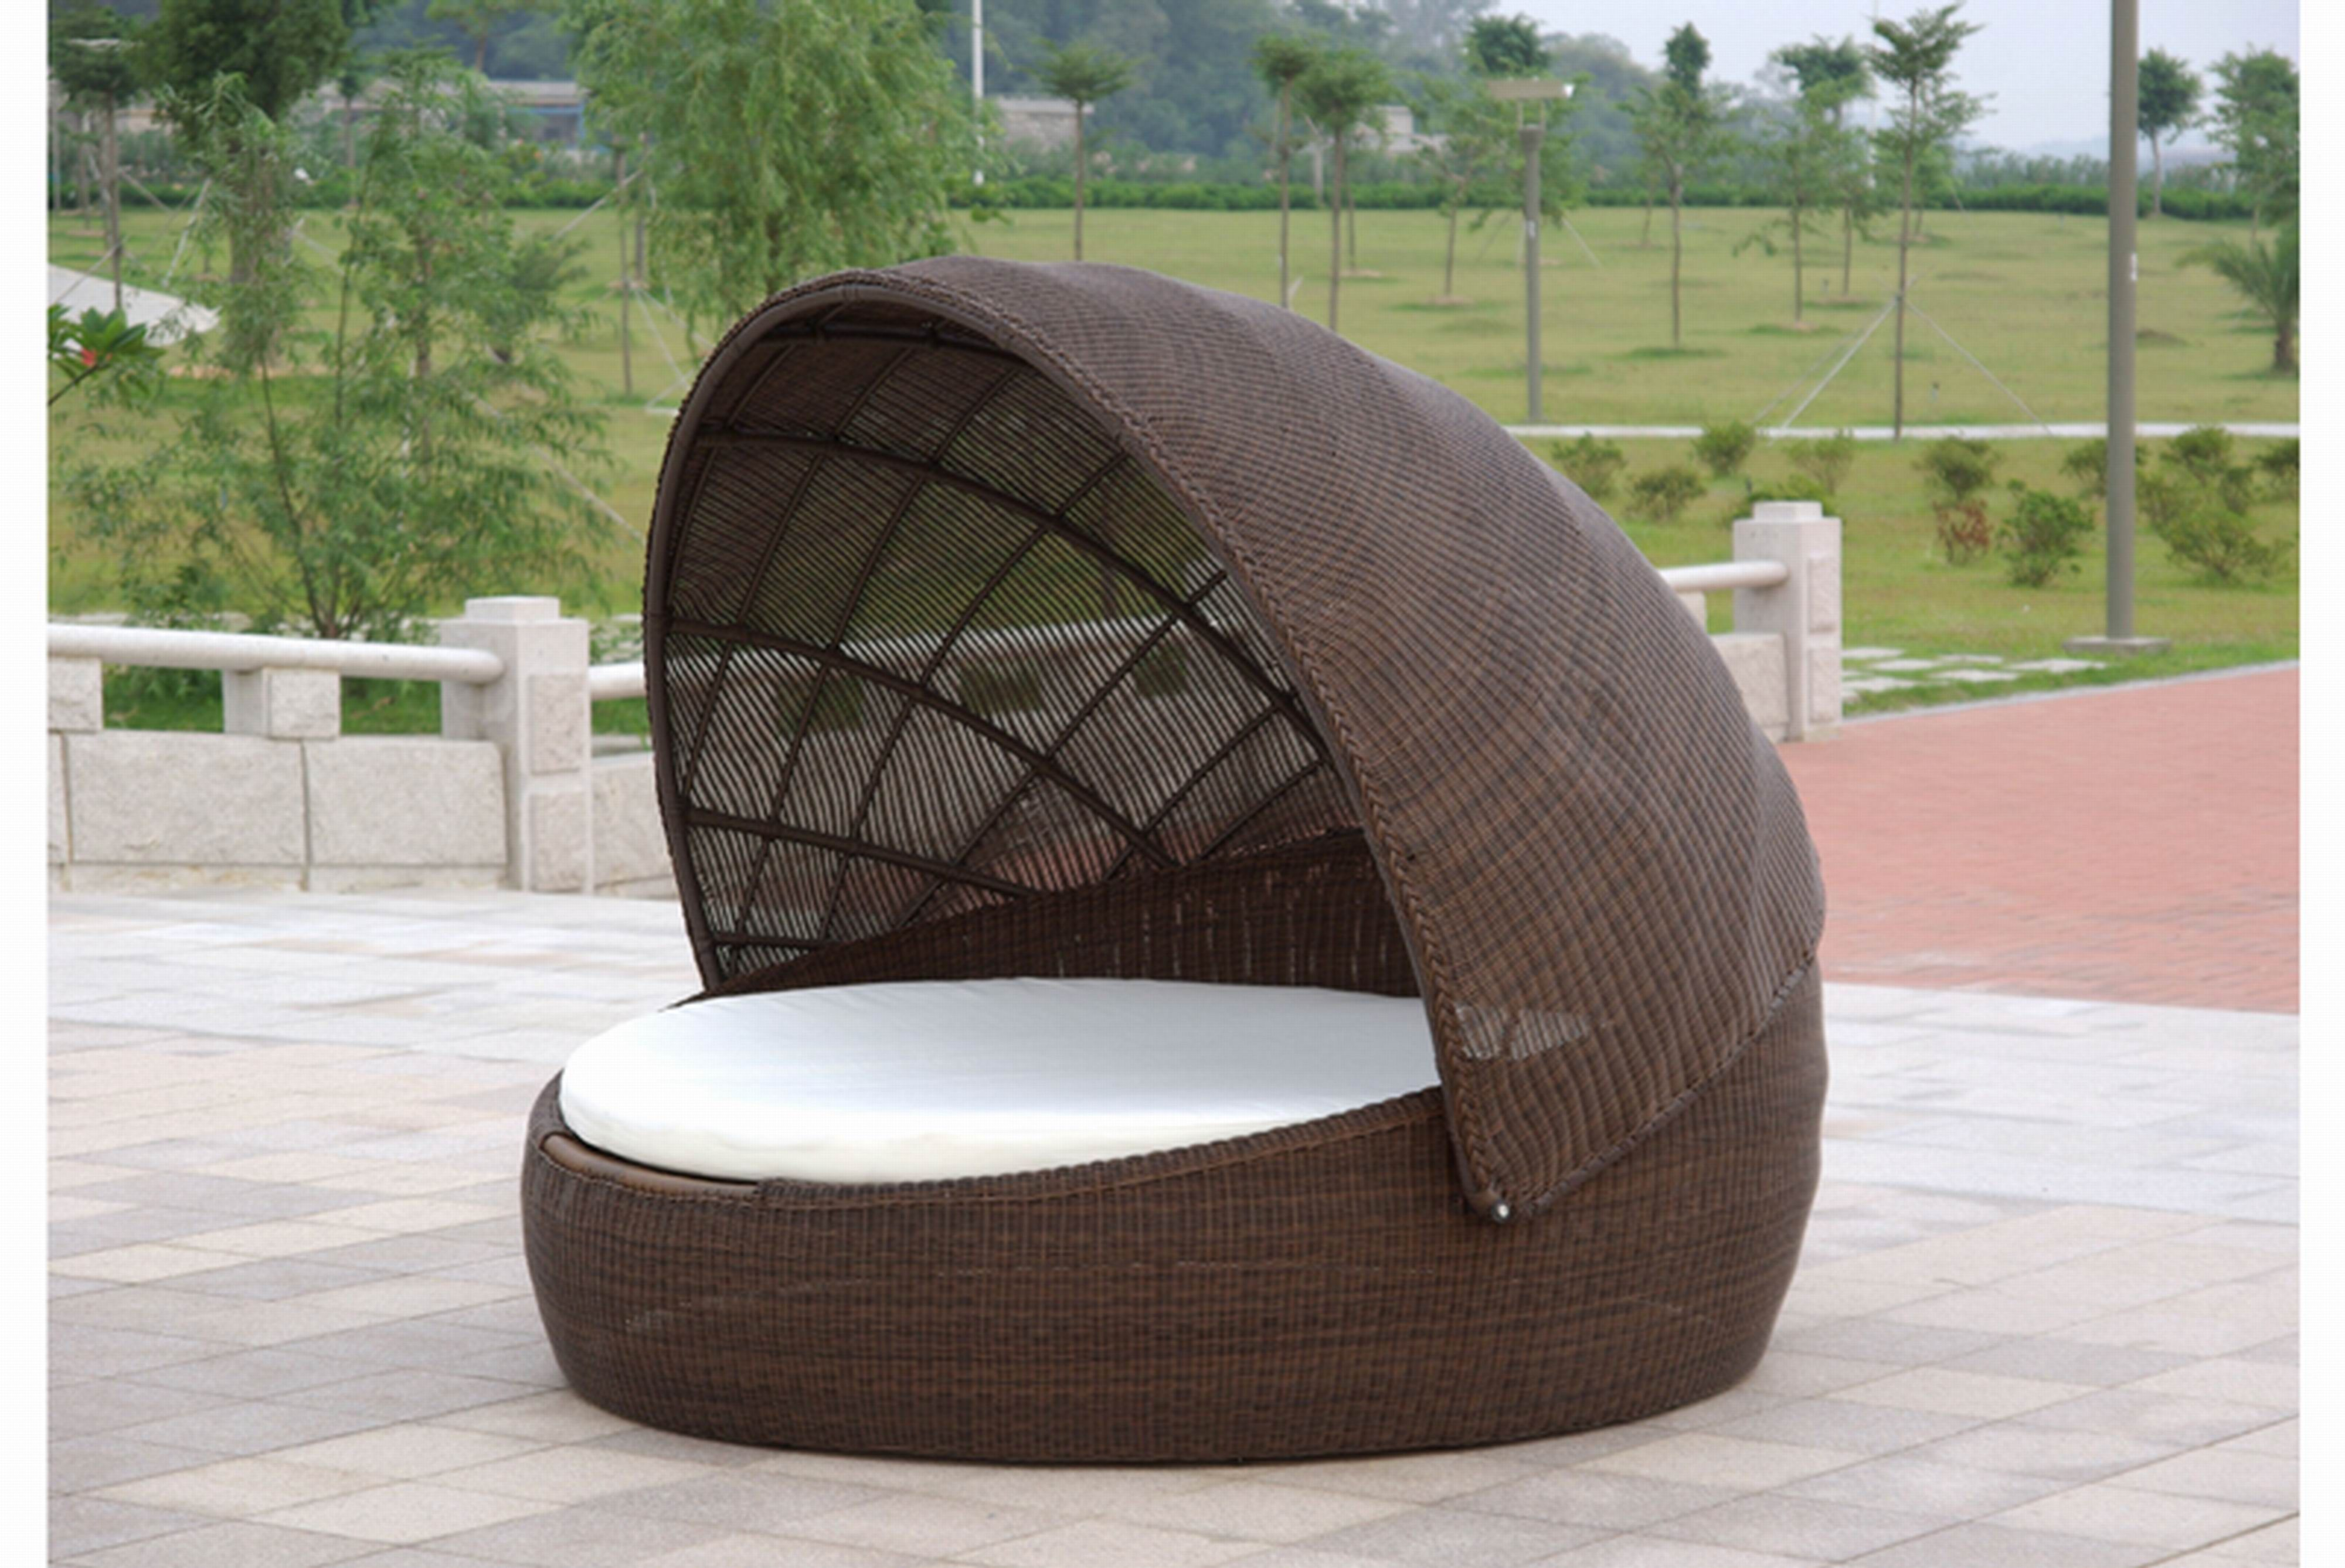 best daybeds images on pinterest  outdoor daybed day bed and daybed.  best daybeds images on pinterest  outdoor daybed day bed and